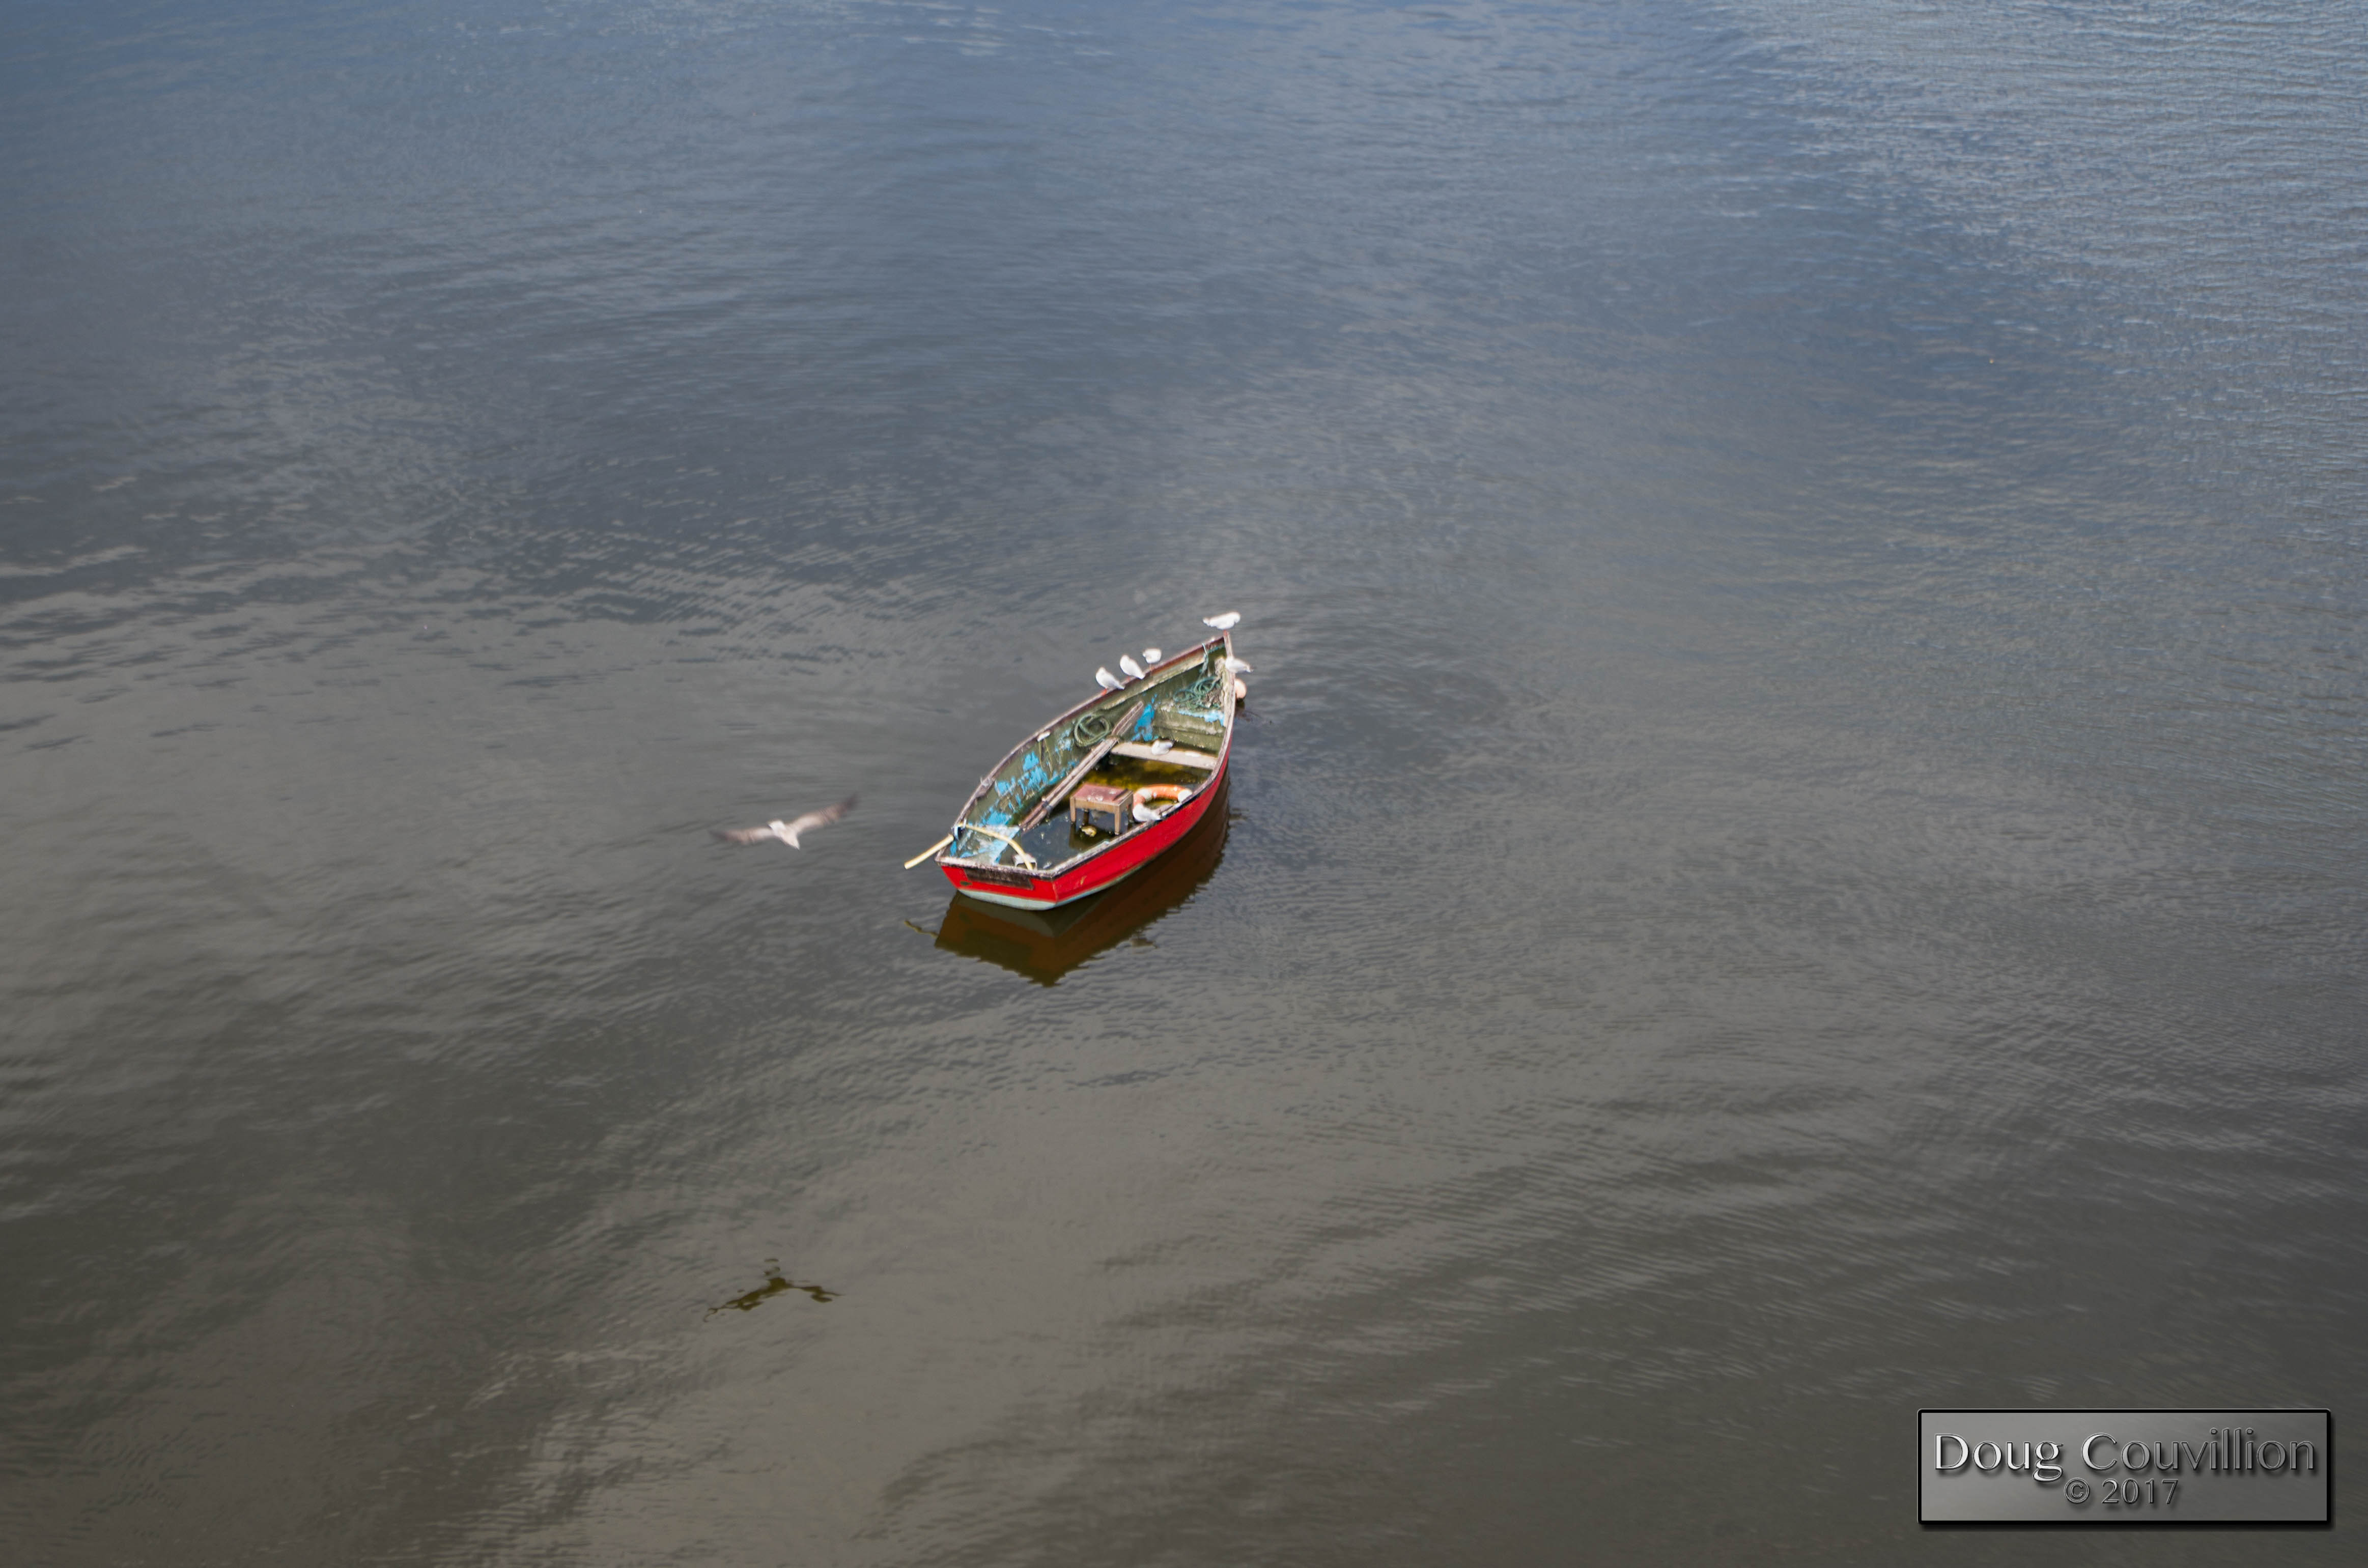 Photograph of a boat and seagulls on the River Lee, Cork, Ireland